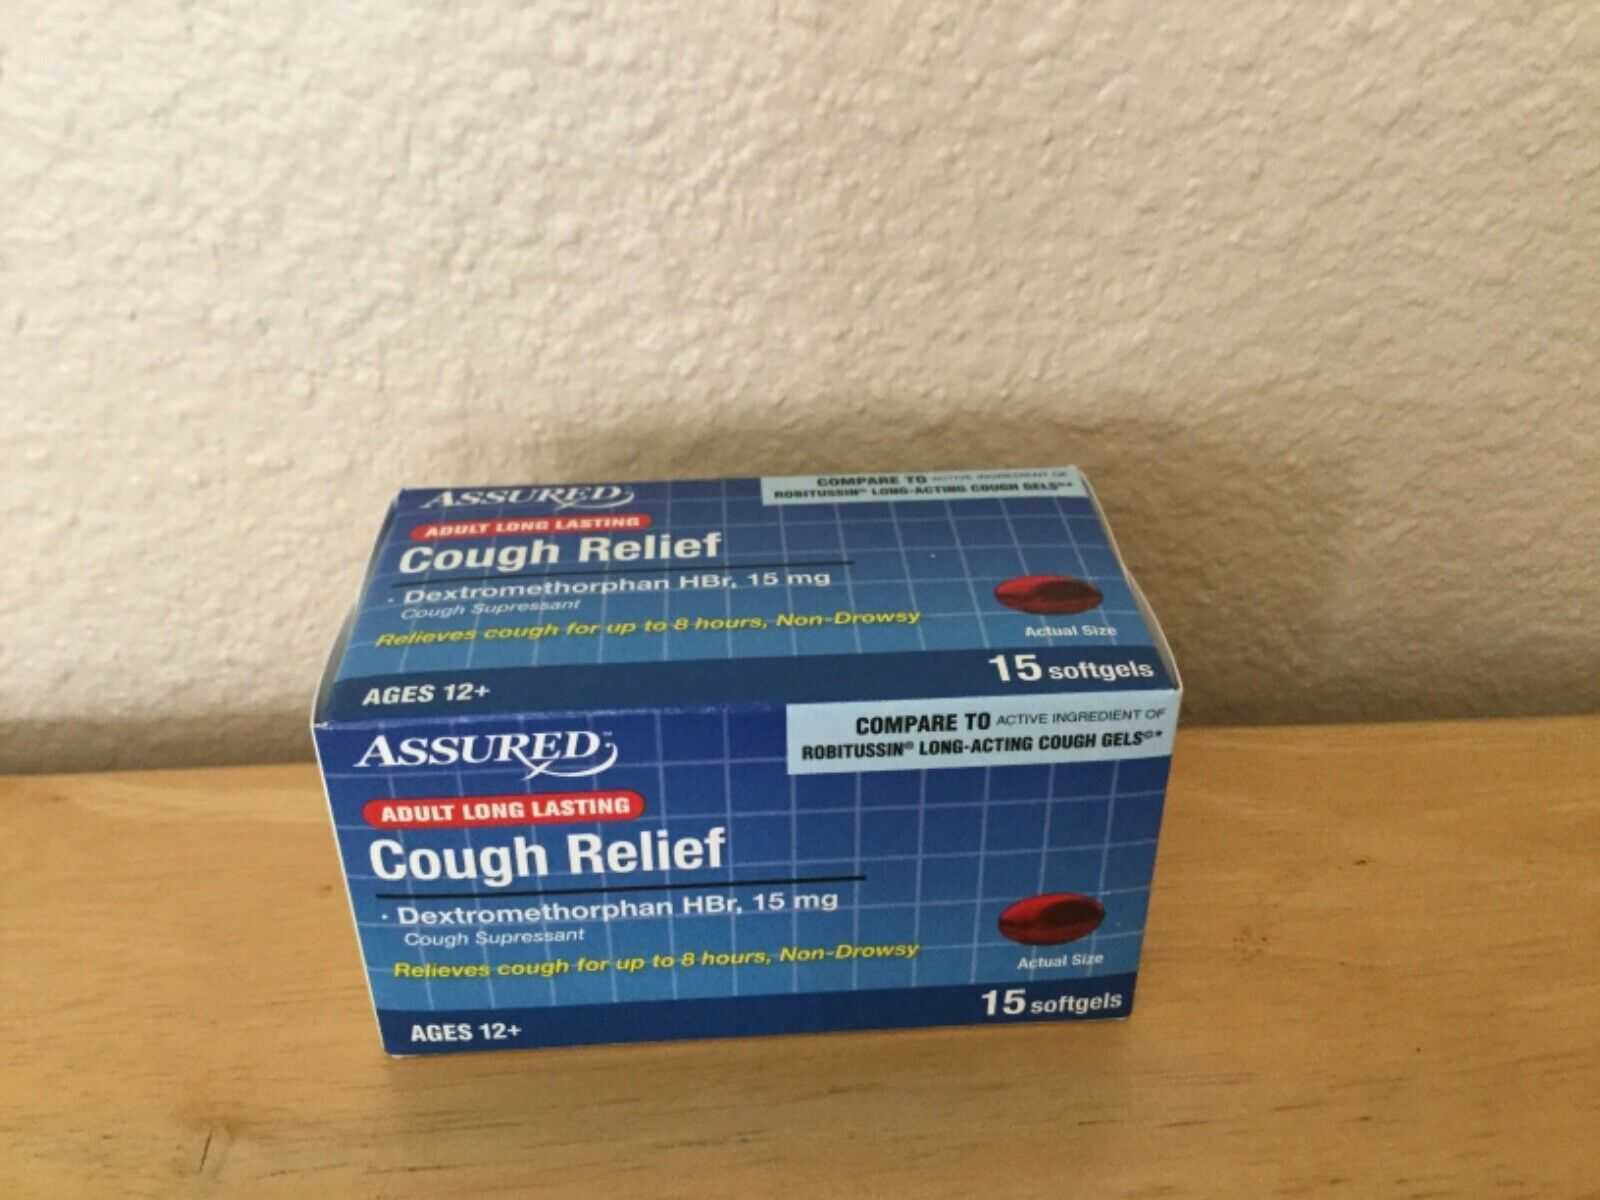 Dextromethorphan HBR Suppression Cough Relief Pills total 1000 1600x1200